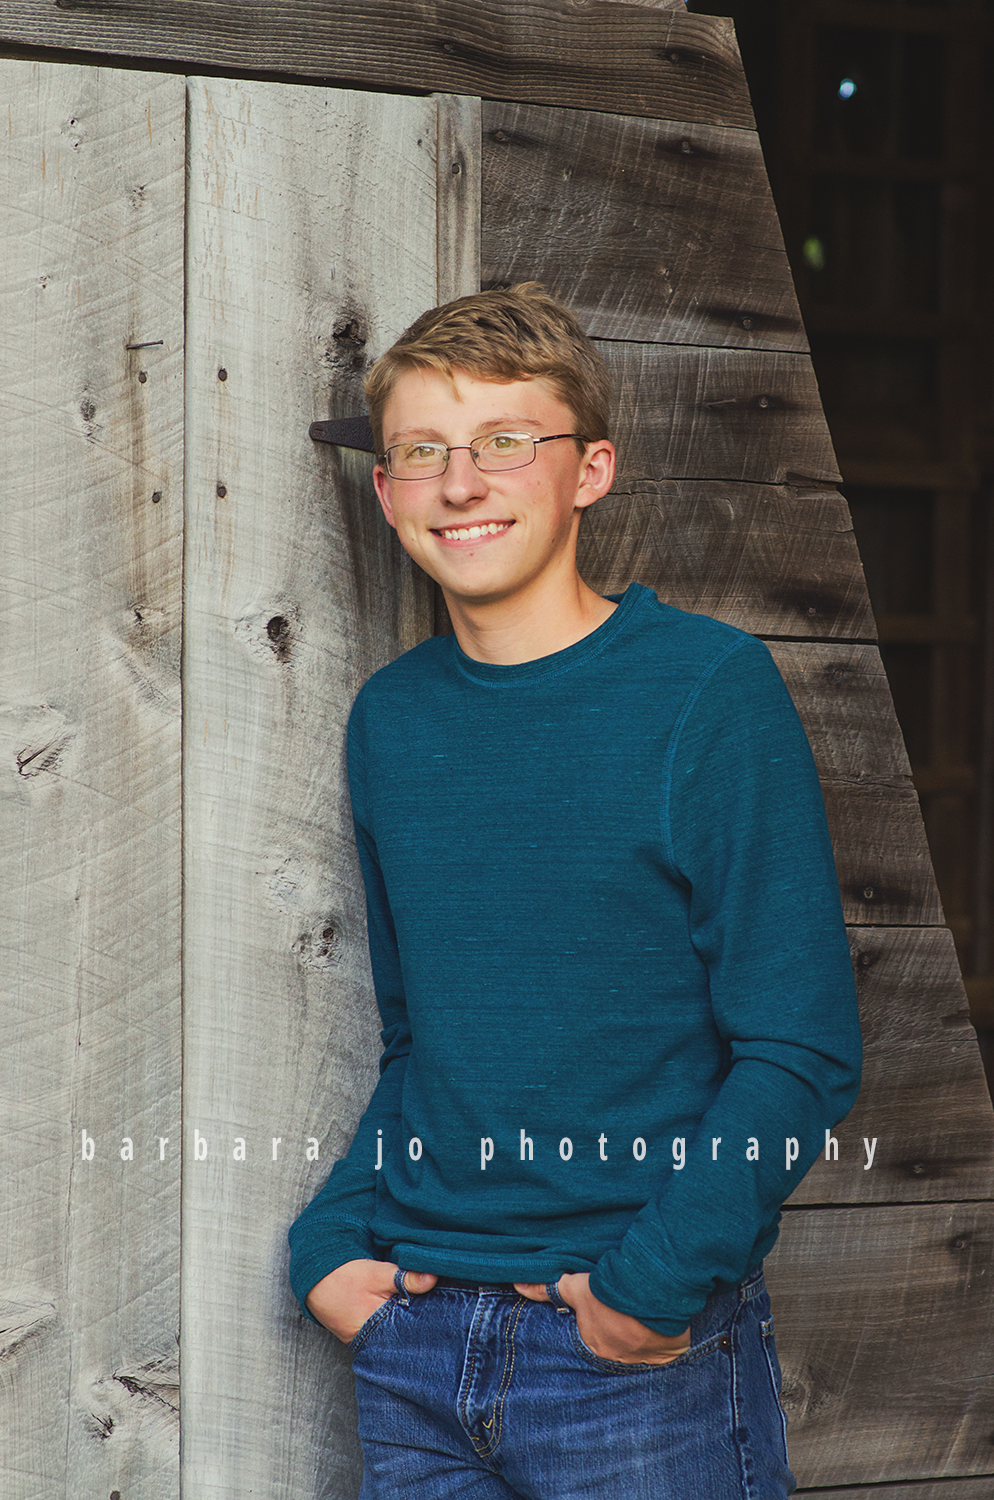 bjp-senior-photographer-class-of-2018-nphs-teen-barn-family-farm-guy-fall-adam2.png